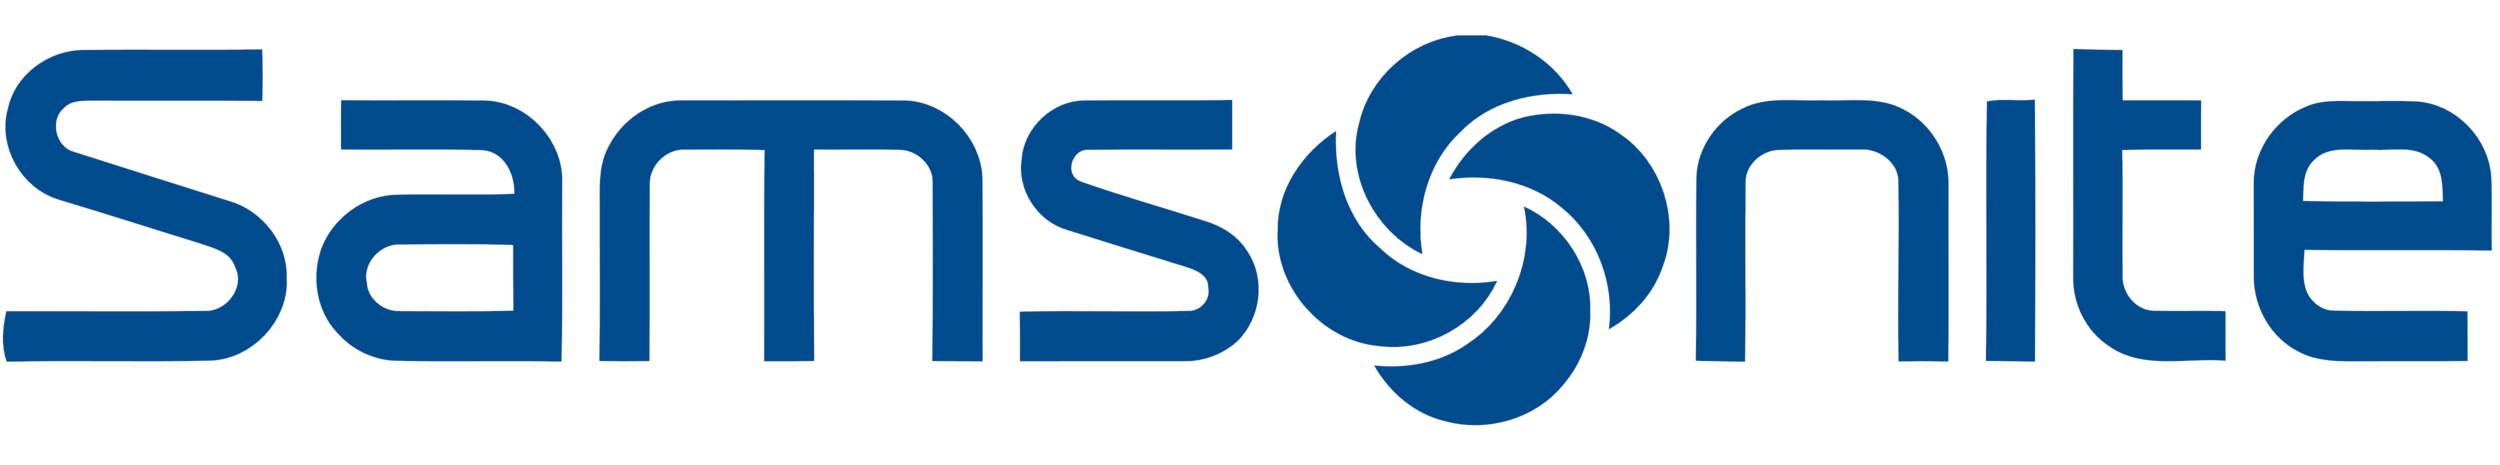 Samsonite_logo_wordmark.png